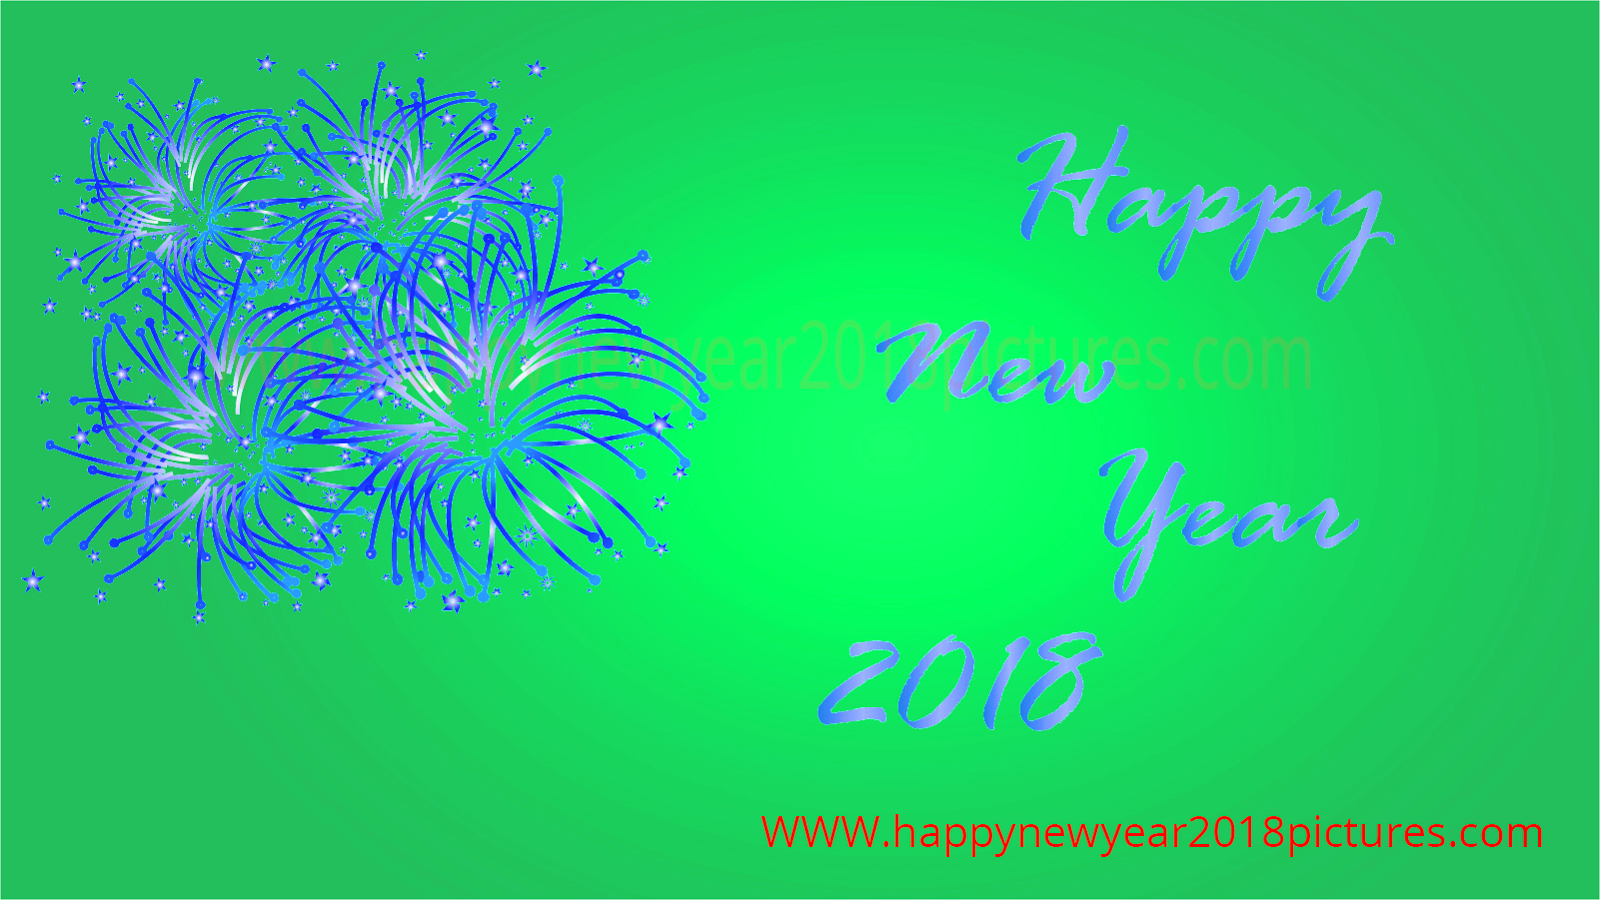 happy new year hd photos 2k18 images pics for facebook whatsapp